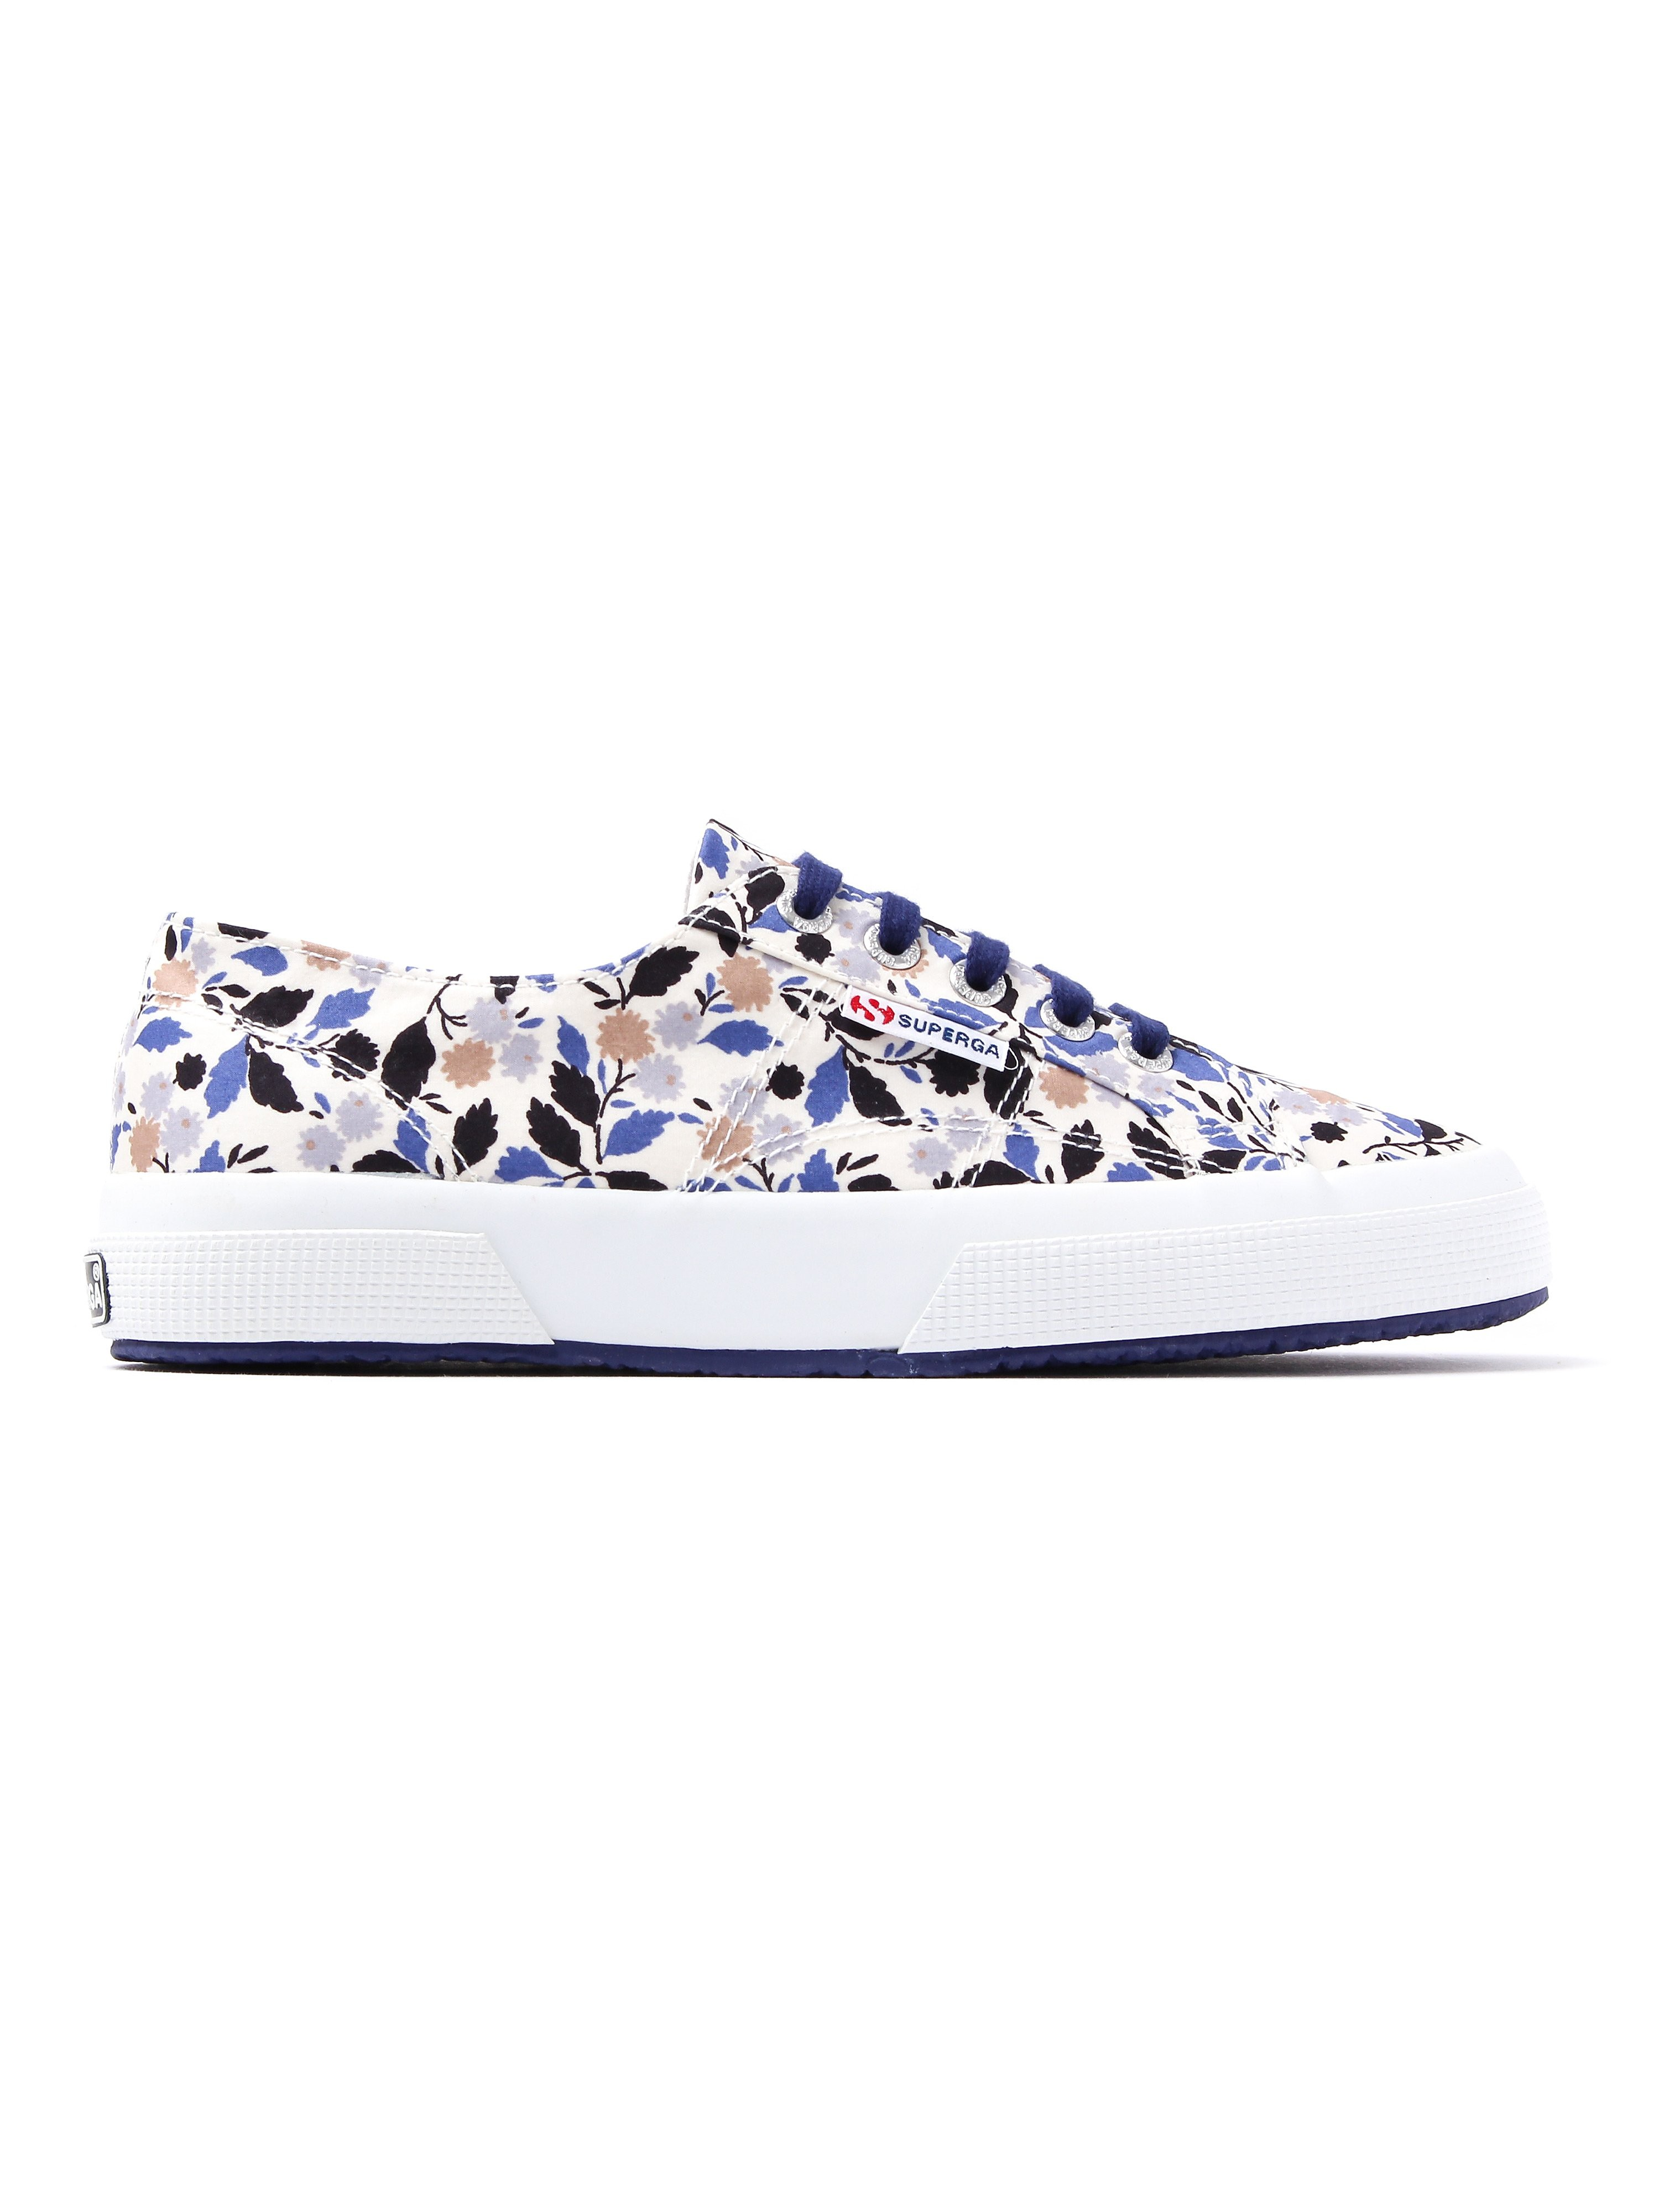 Superga Women's 2750 Fabric Liberty Floral Print Trainers - Floral Blue & Beige